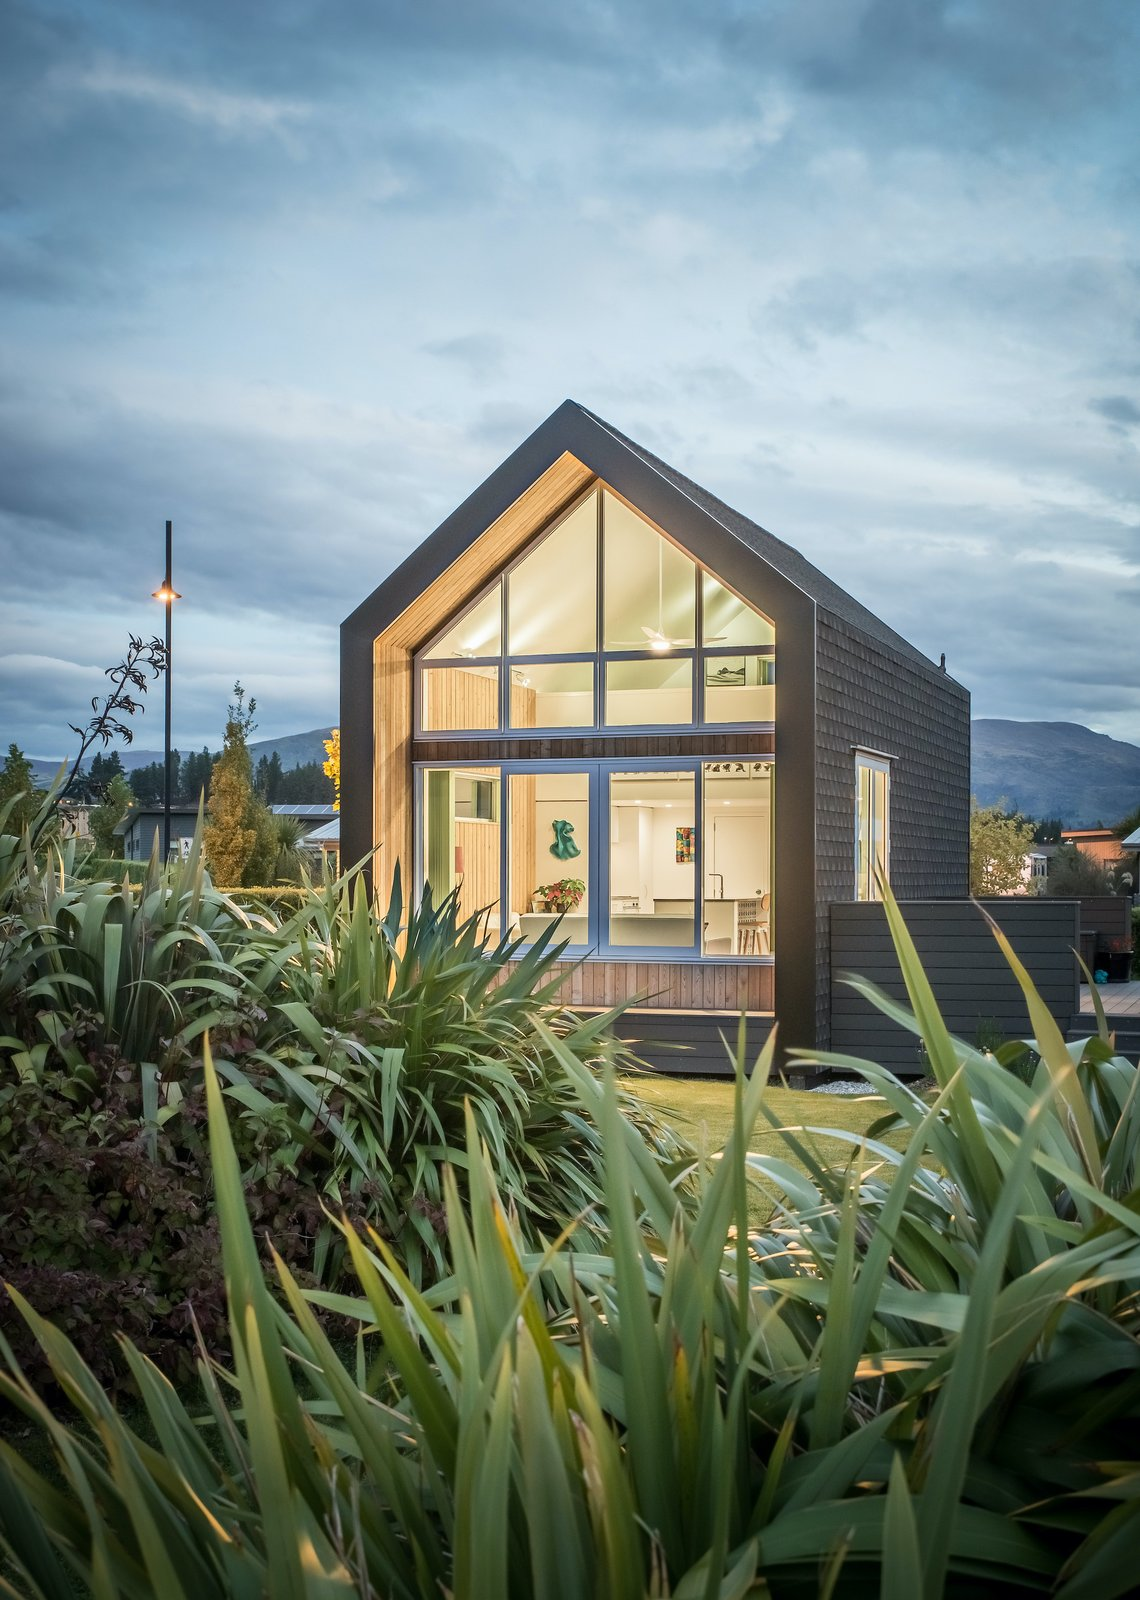 Exterior, House Building Type, Gable RoofLine, Shingles Roof Material, and Tiny Home Building Type The home is defined by a simple gable form clad in asphalt shingles and larch weatherboards. With a combination of passive house measures and structural insulated panels, virtually no additional energy is required to maintain a consistent level of thermal comfort against the backdrop of the unforgiving New Zealand alpine climate.  Photo 1 of 14 in This $155K Tiny House in New Zealand Was Inspired by a Couple's Cycling Tour